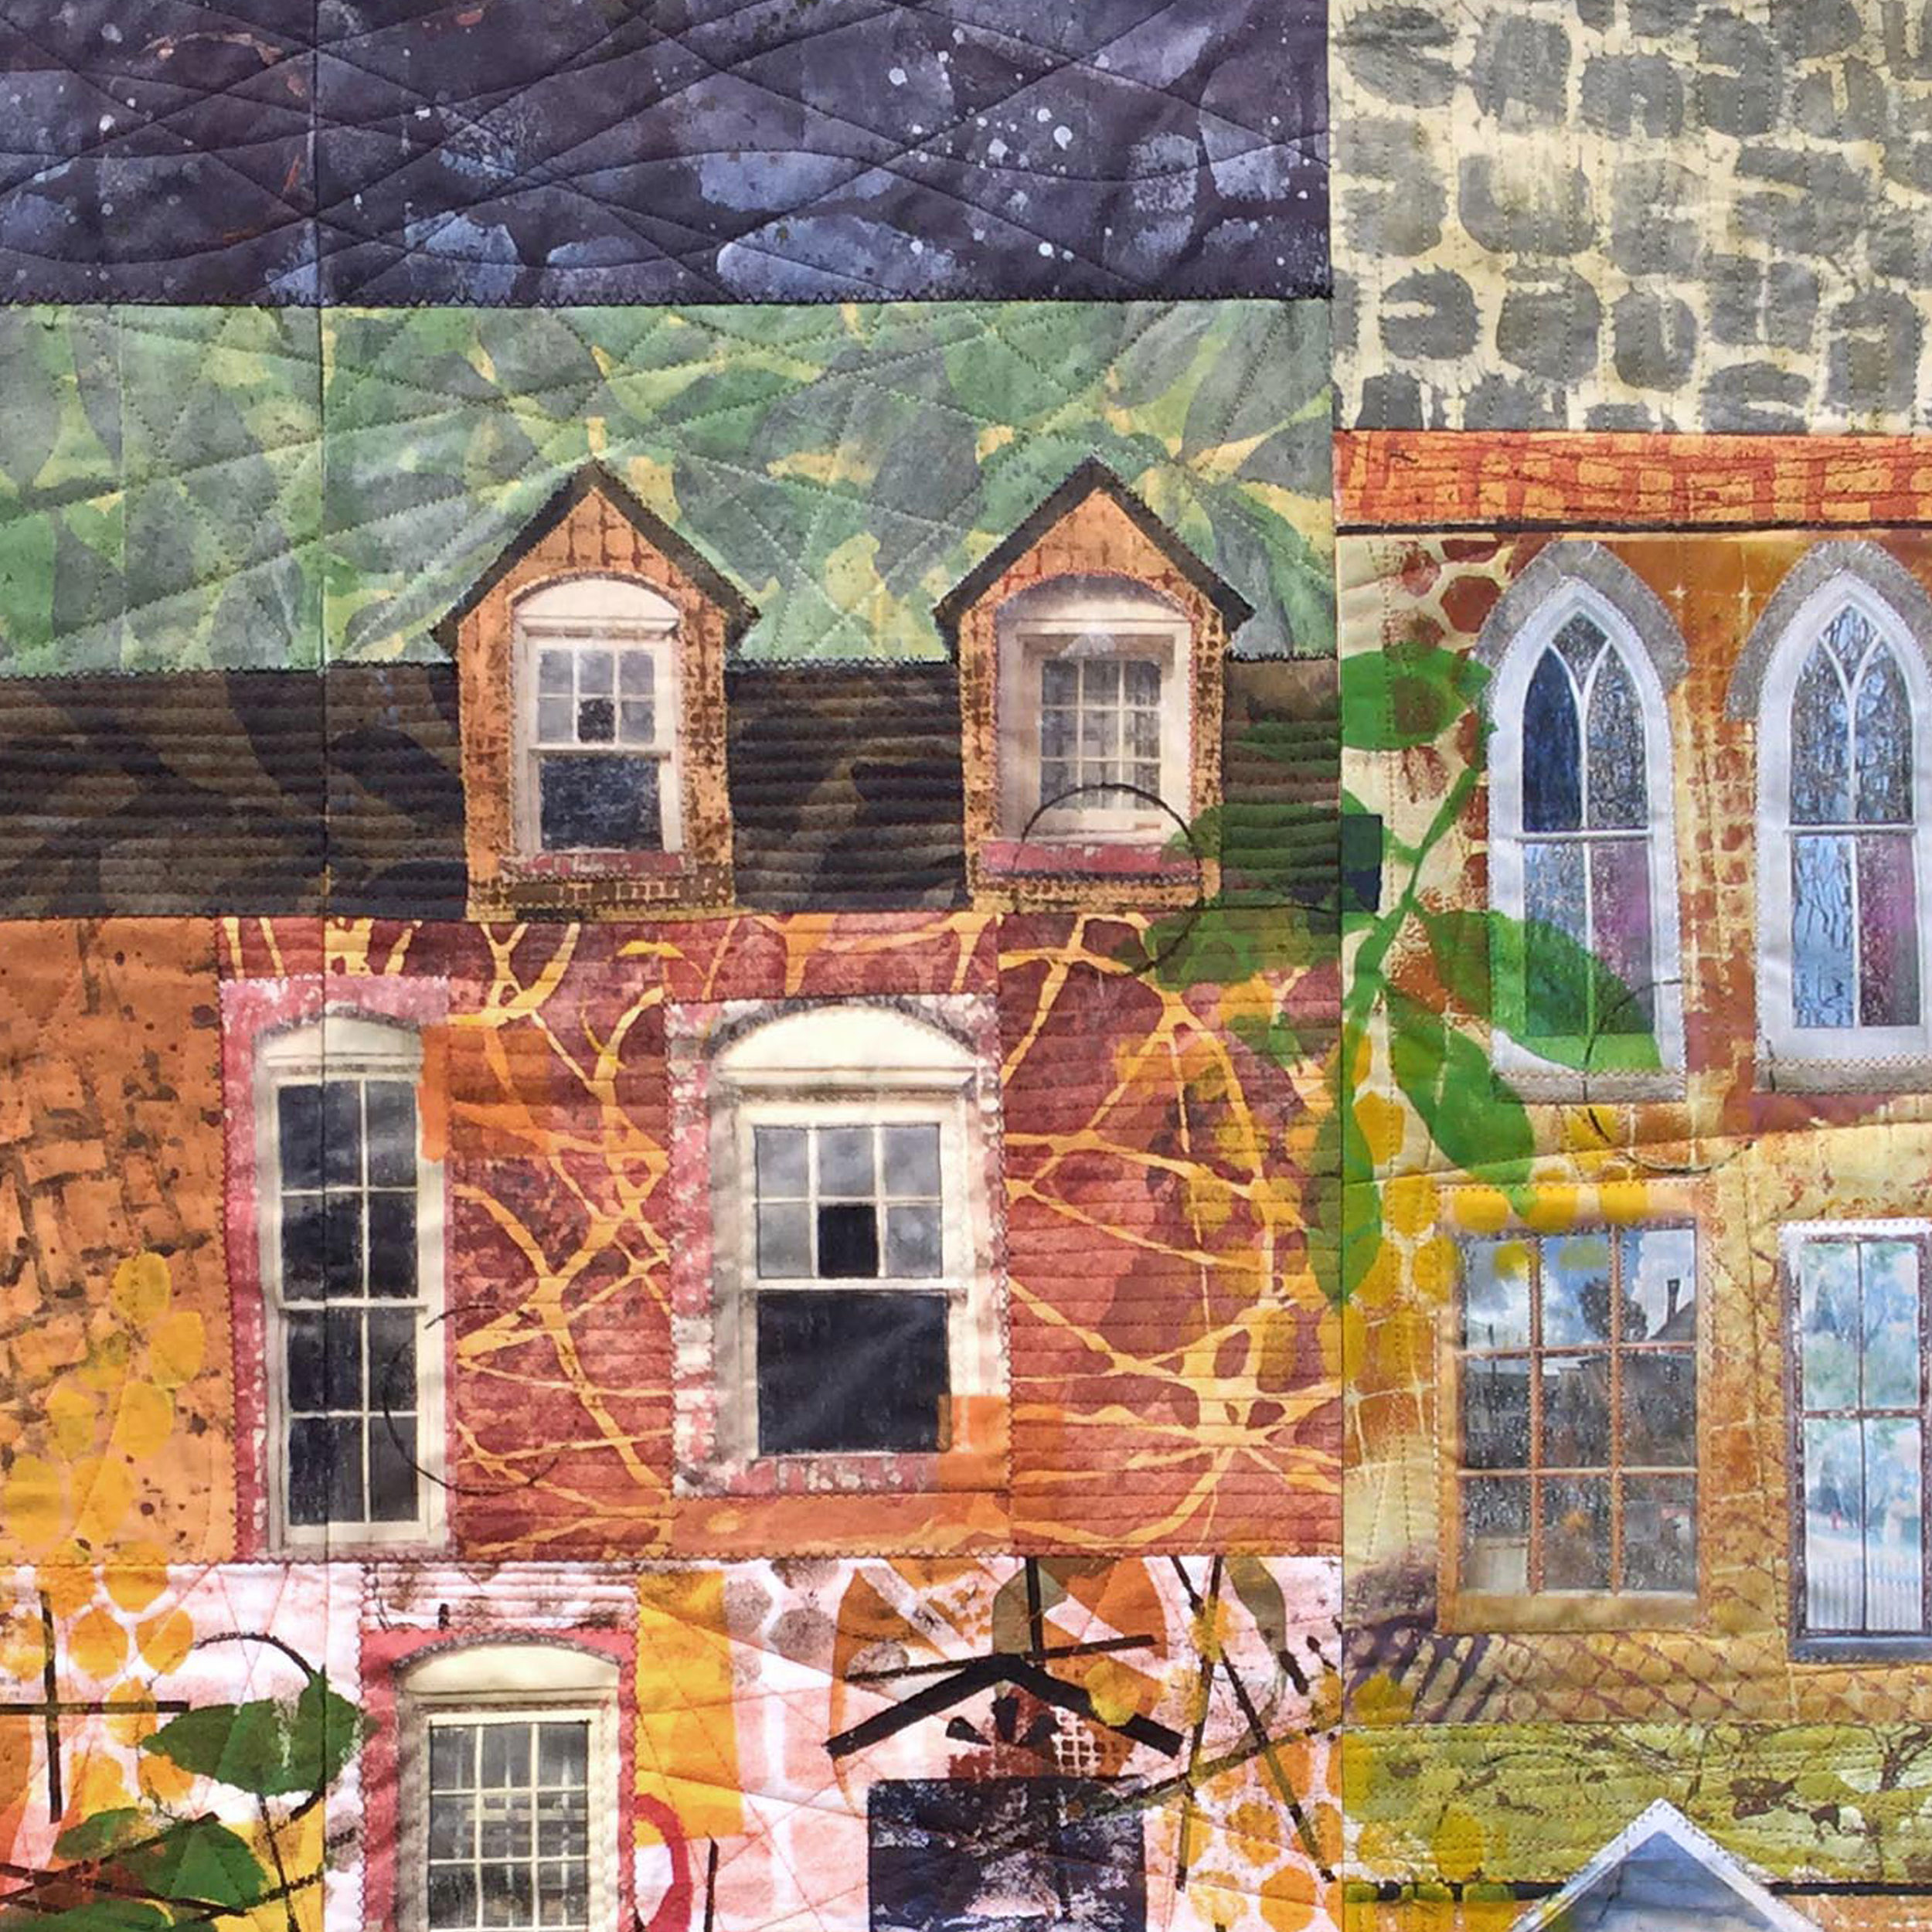 Art Quilt Every One Has a Different Story (Detail) inspired by my childhood row house home